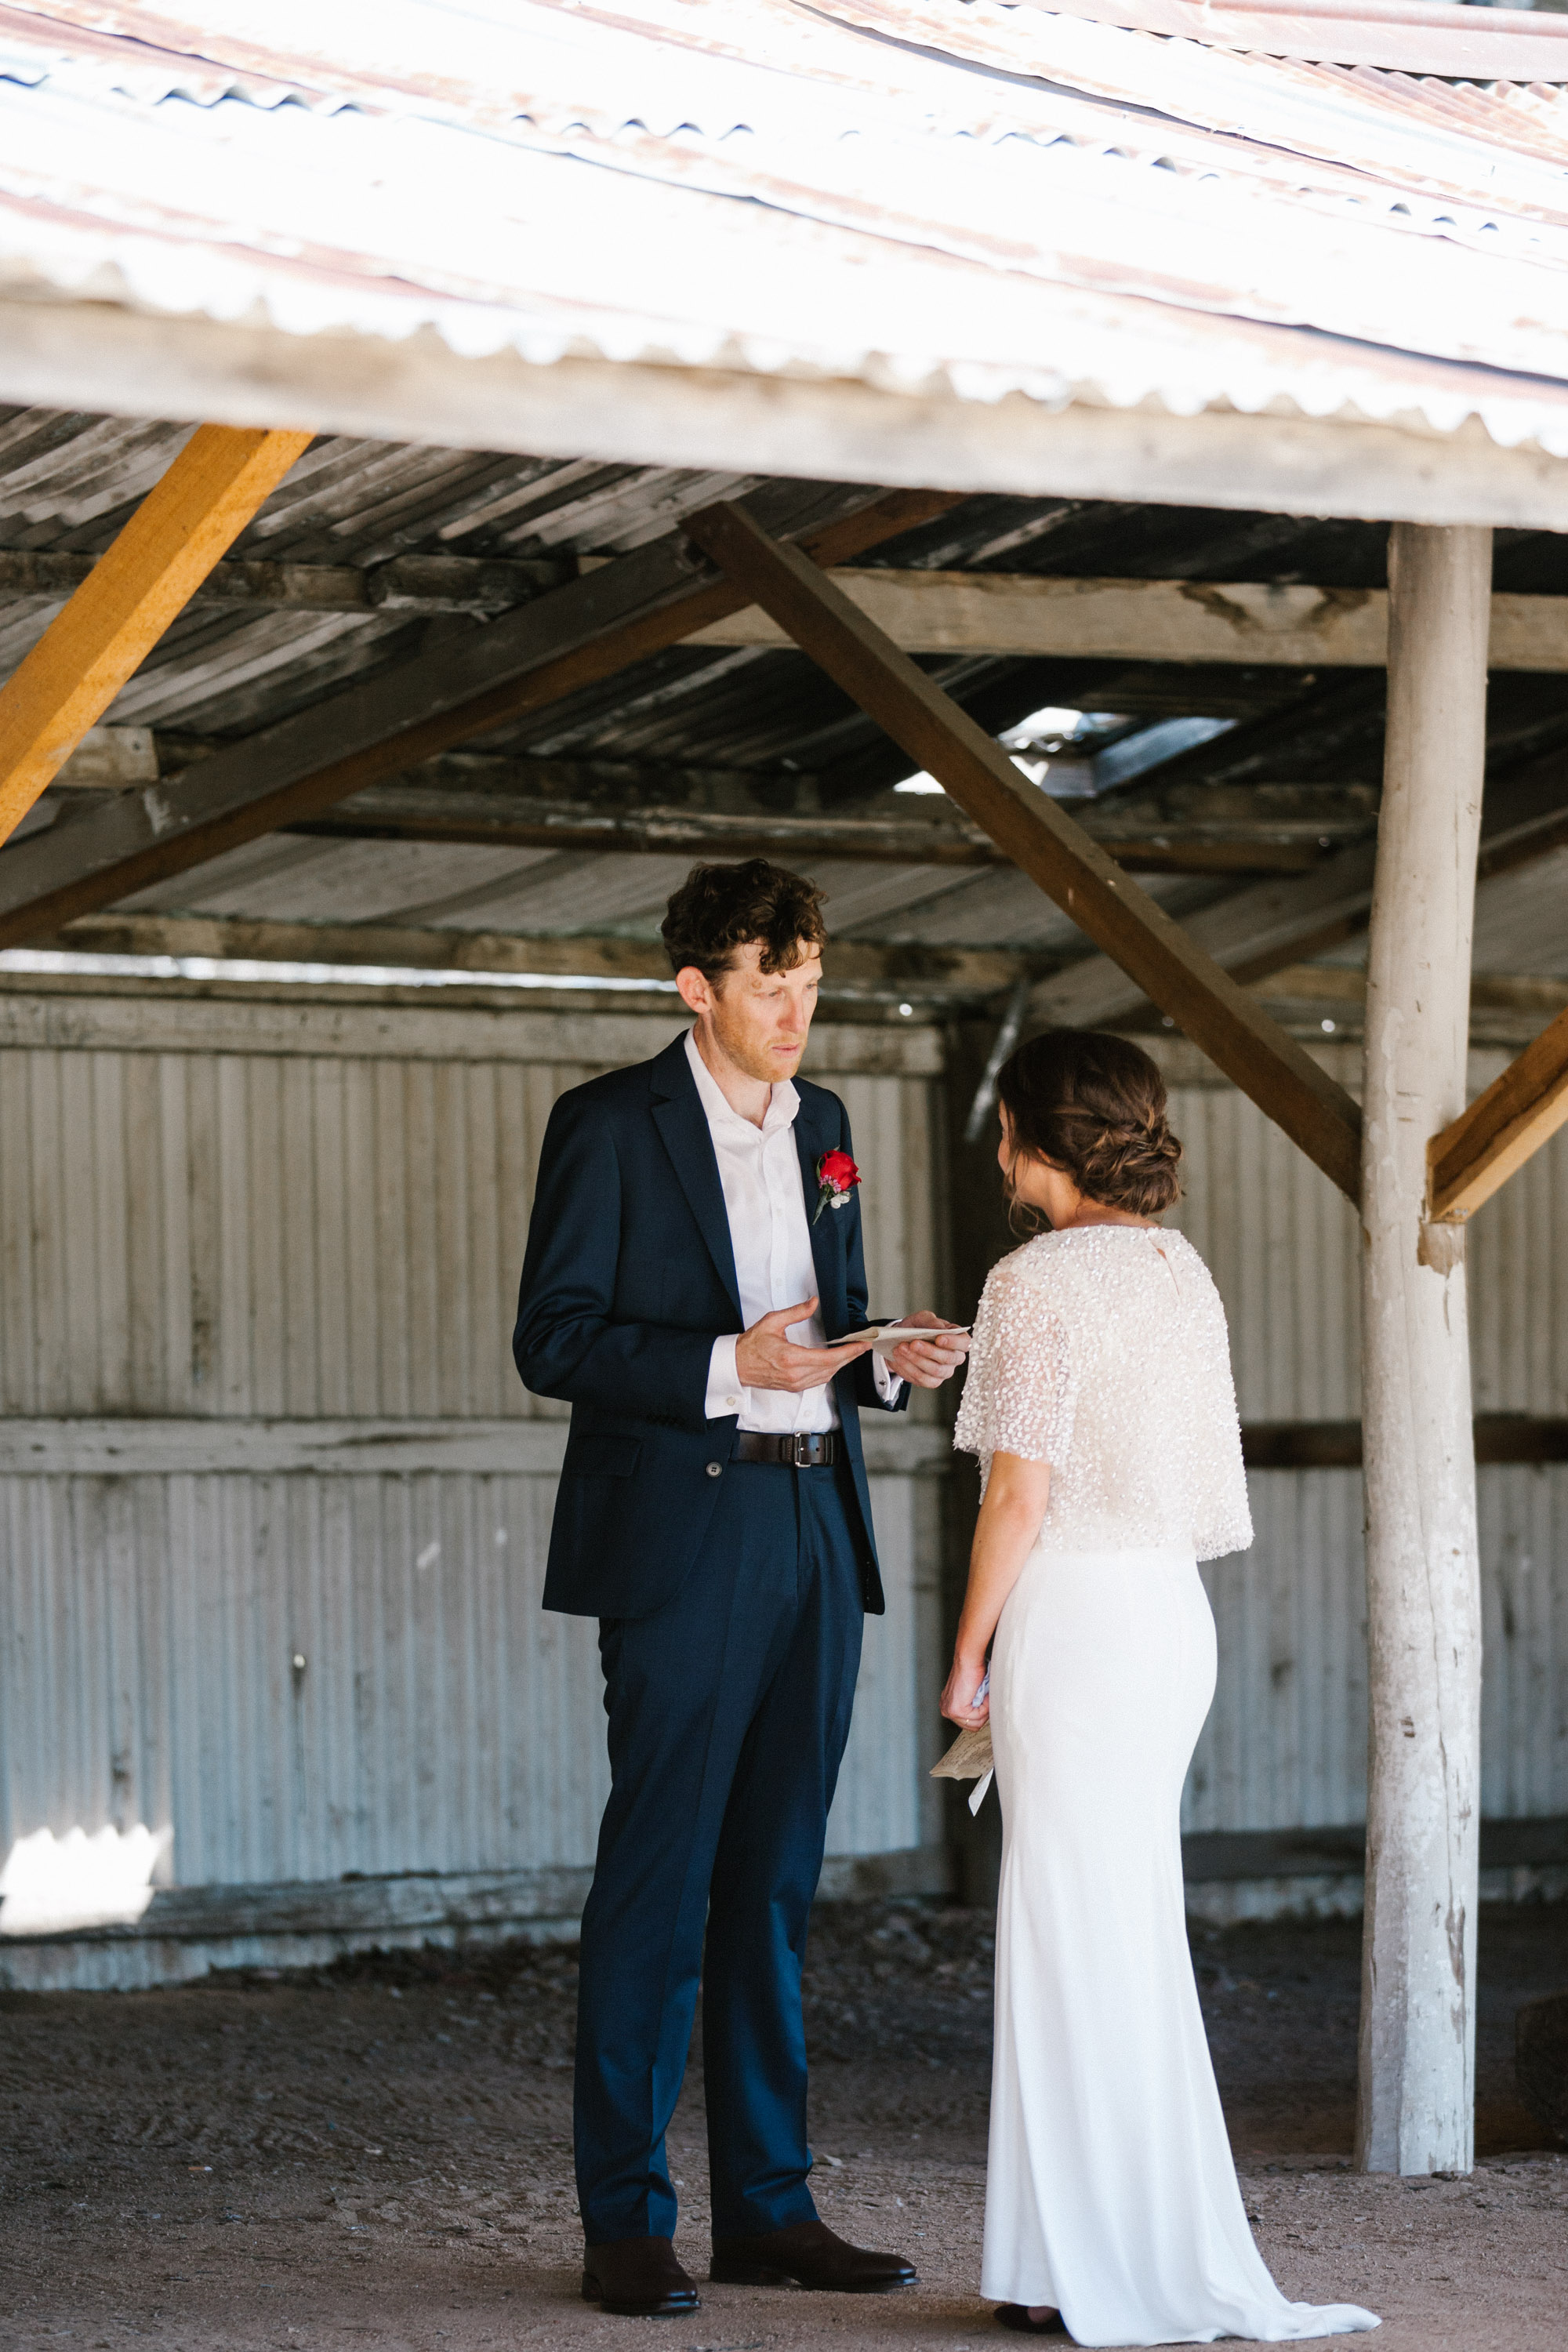 A Country hall wedding